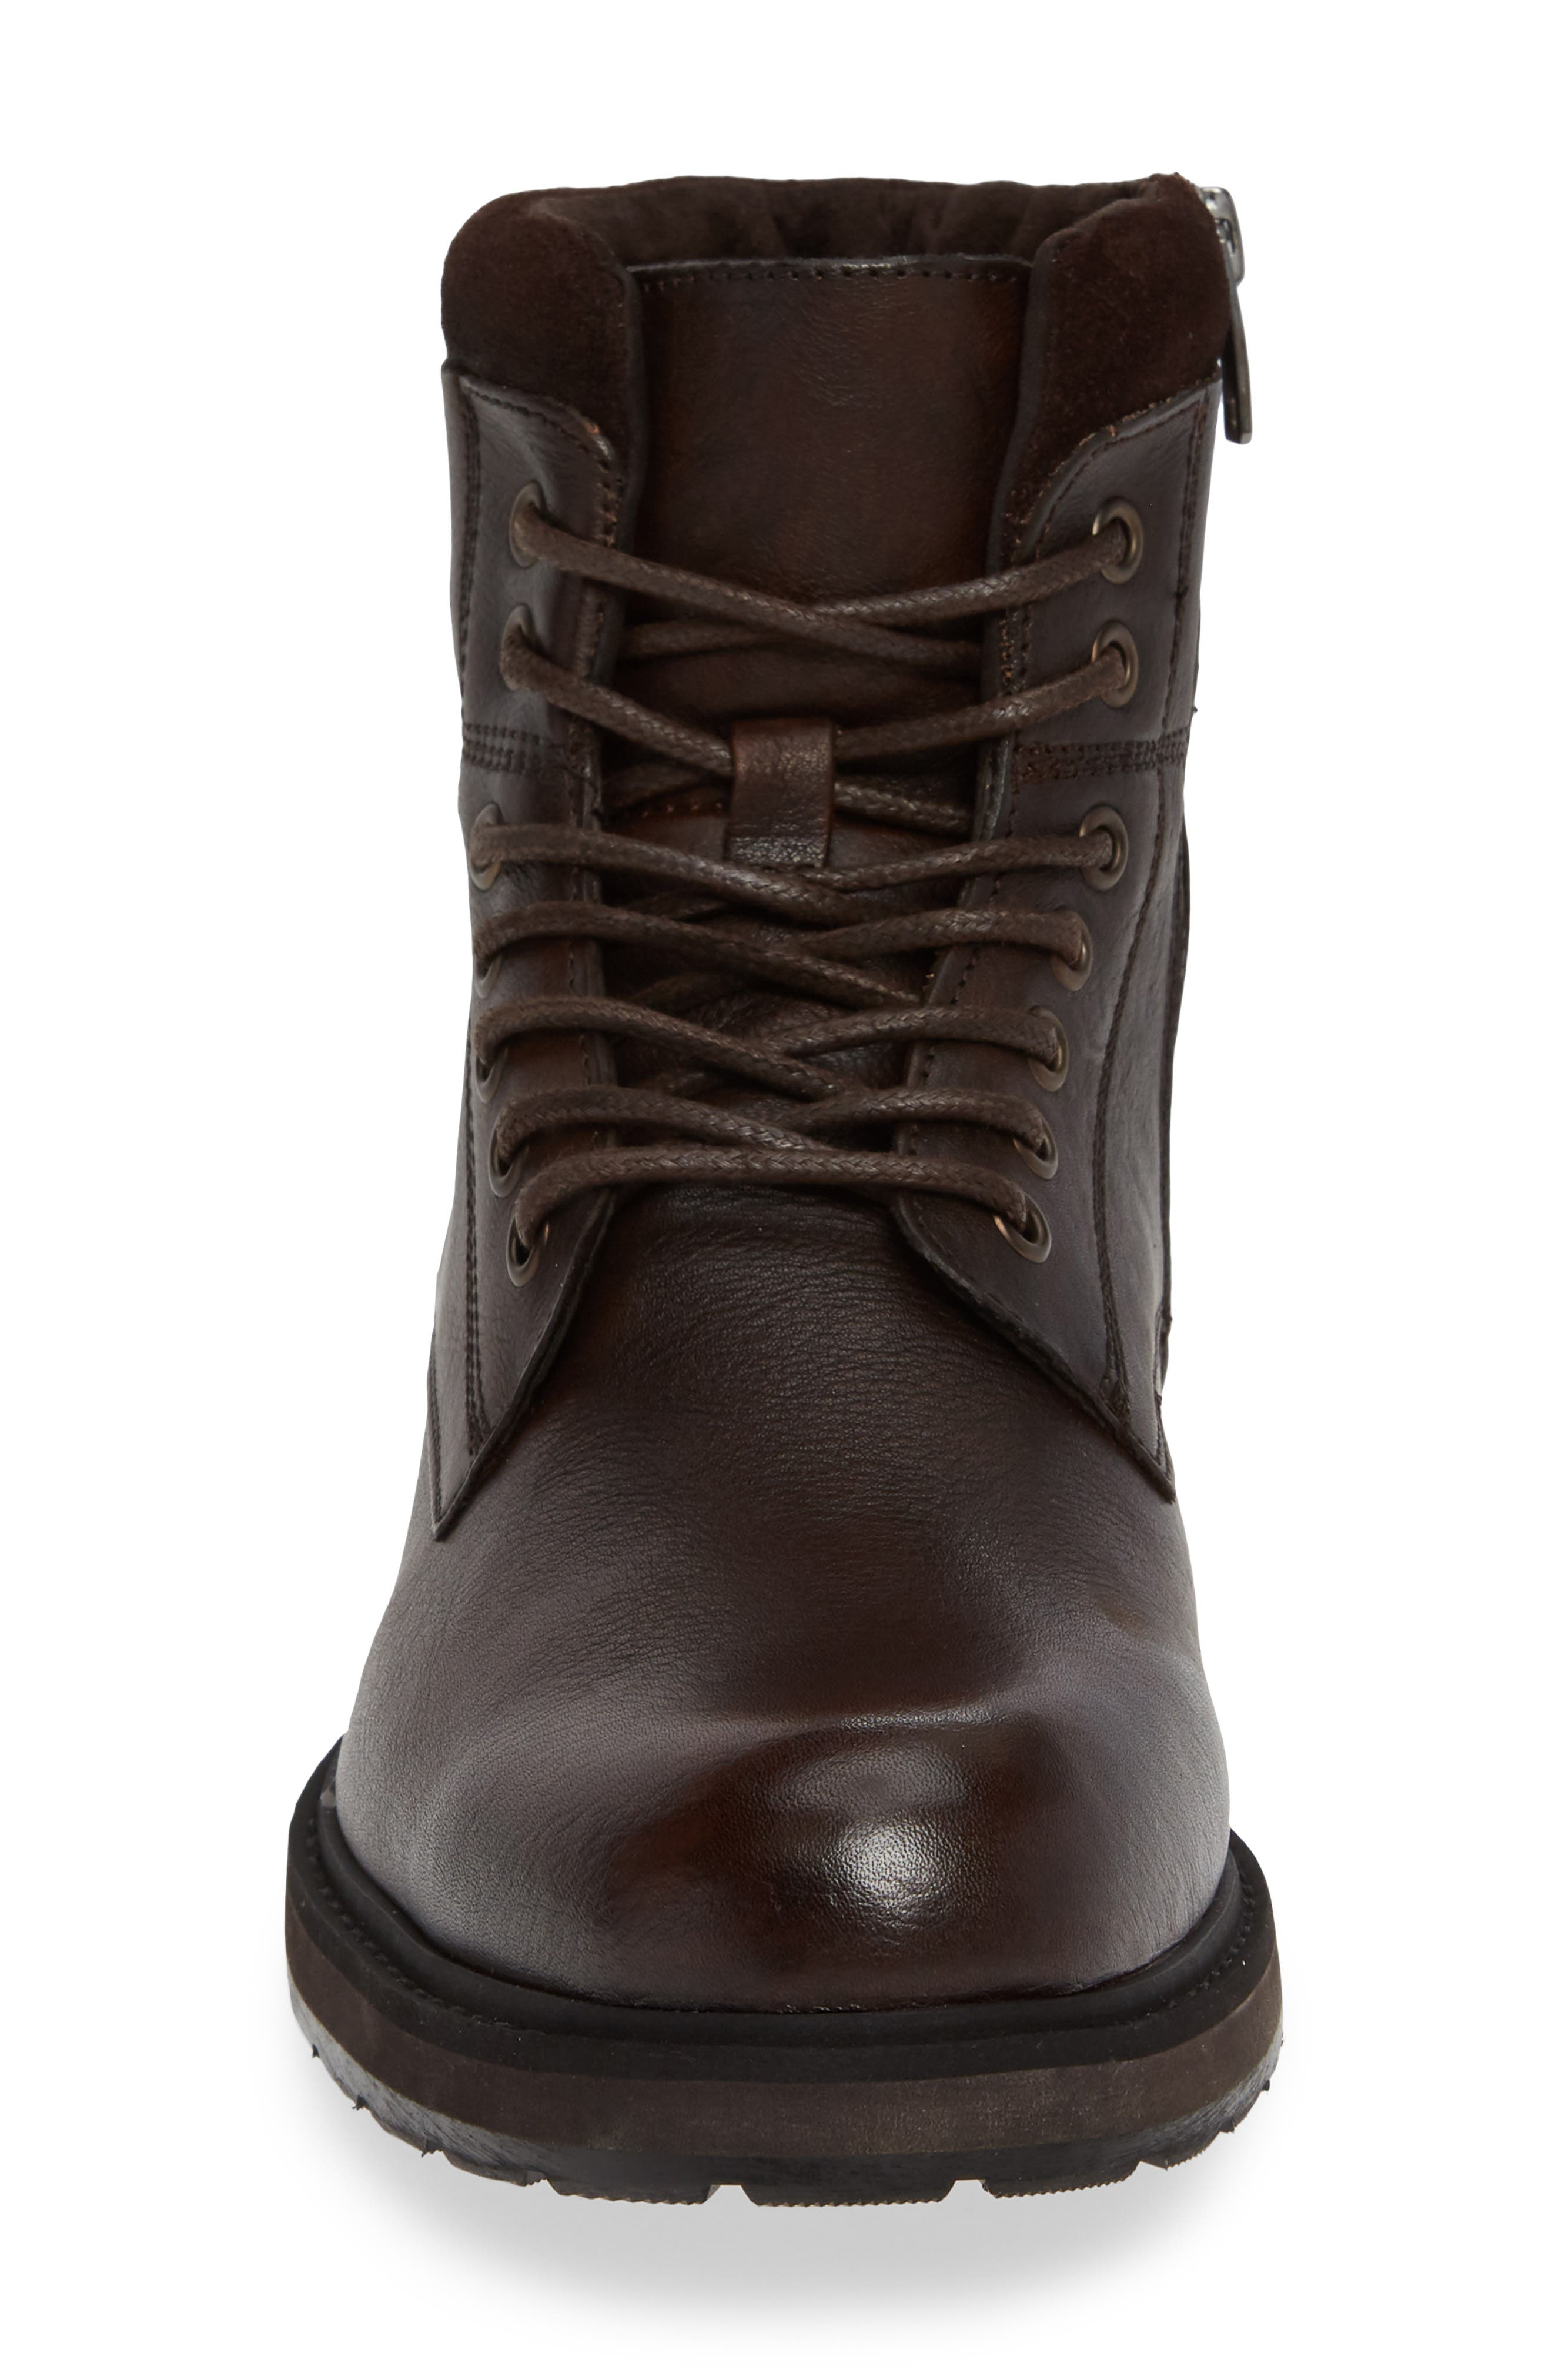 REACTION KENNETH COLE, Drue Pebbled Combat Boot, Alternate thumbnail 4, color, BROWN LEATHER